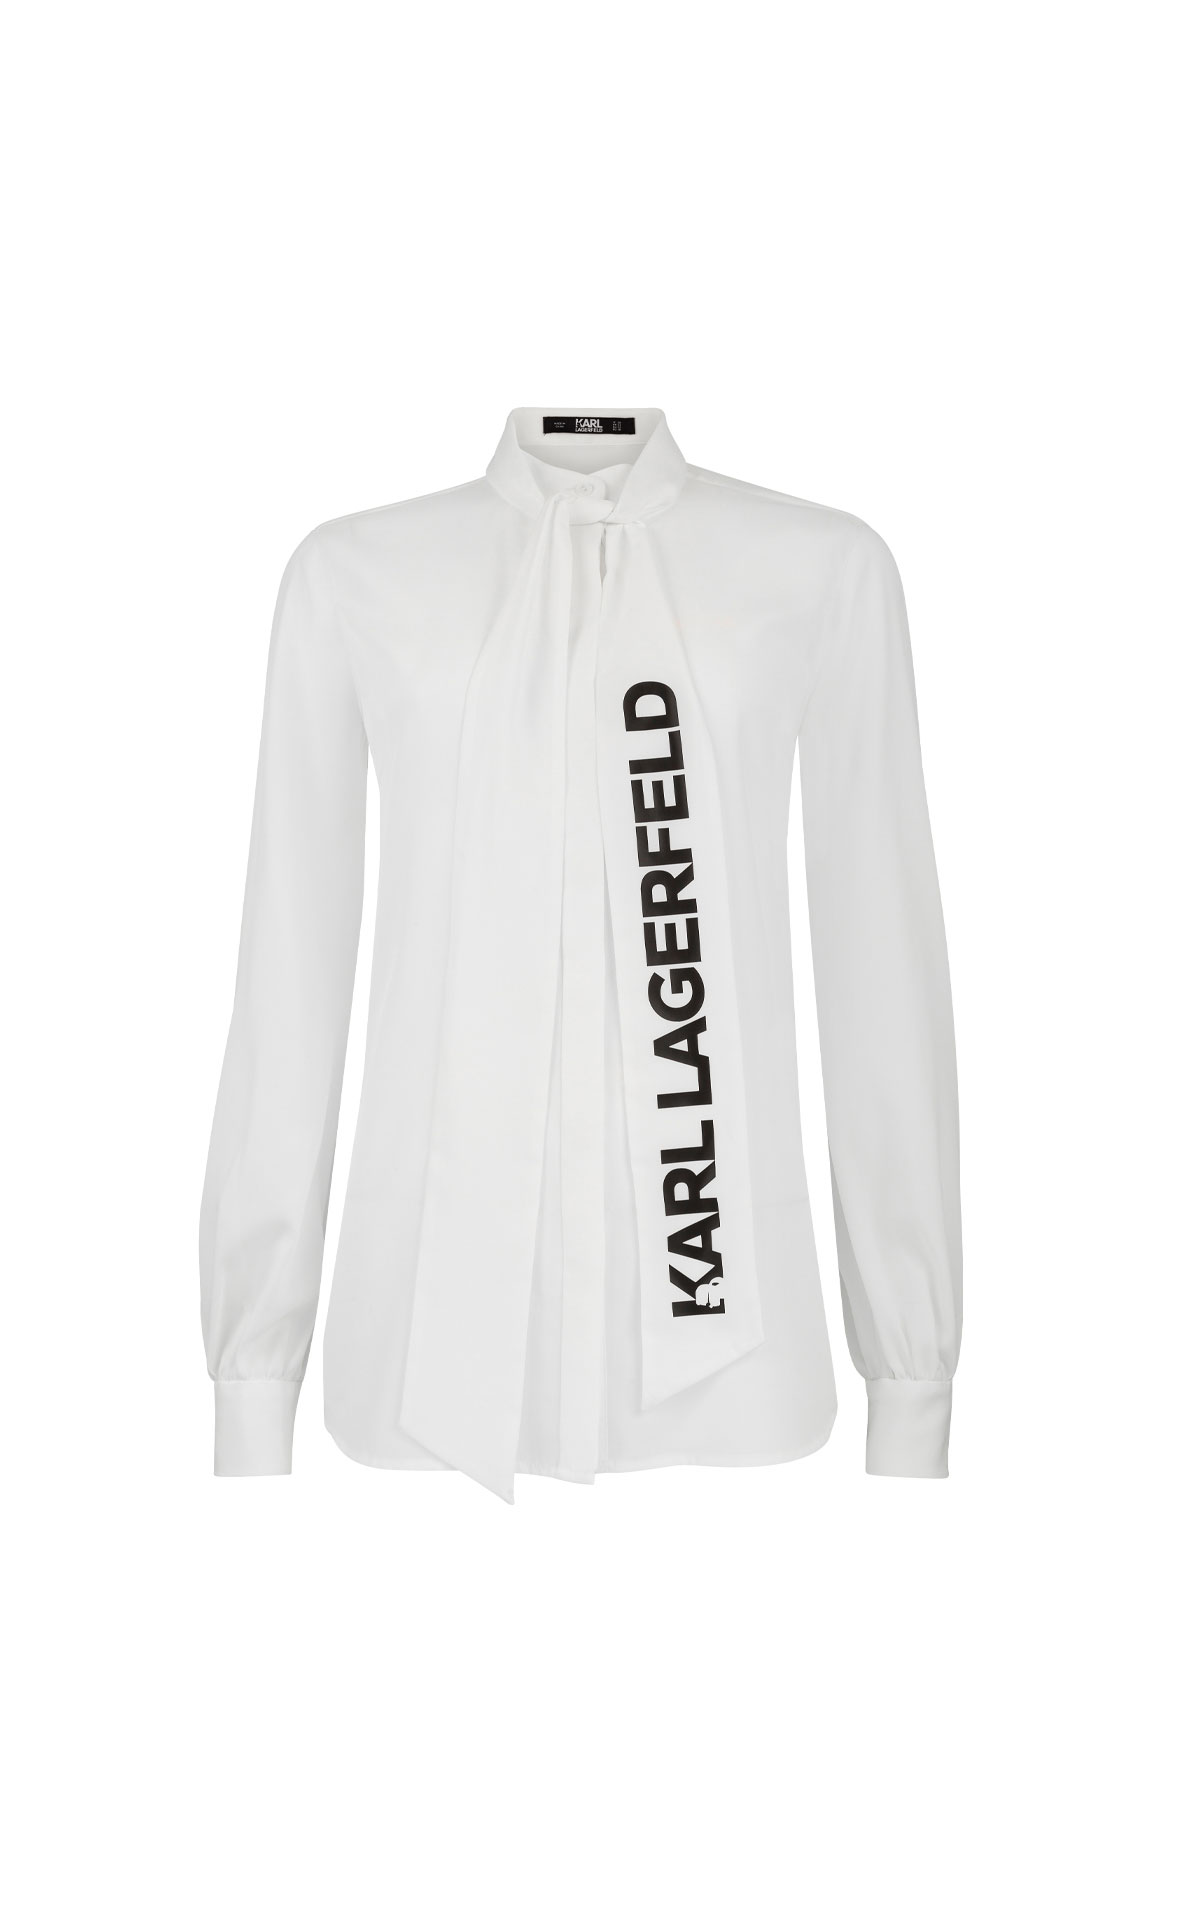 Karl Lagerfeld Blouse white